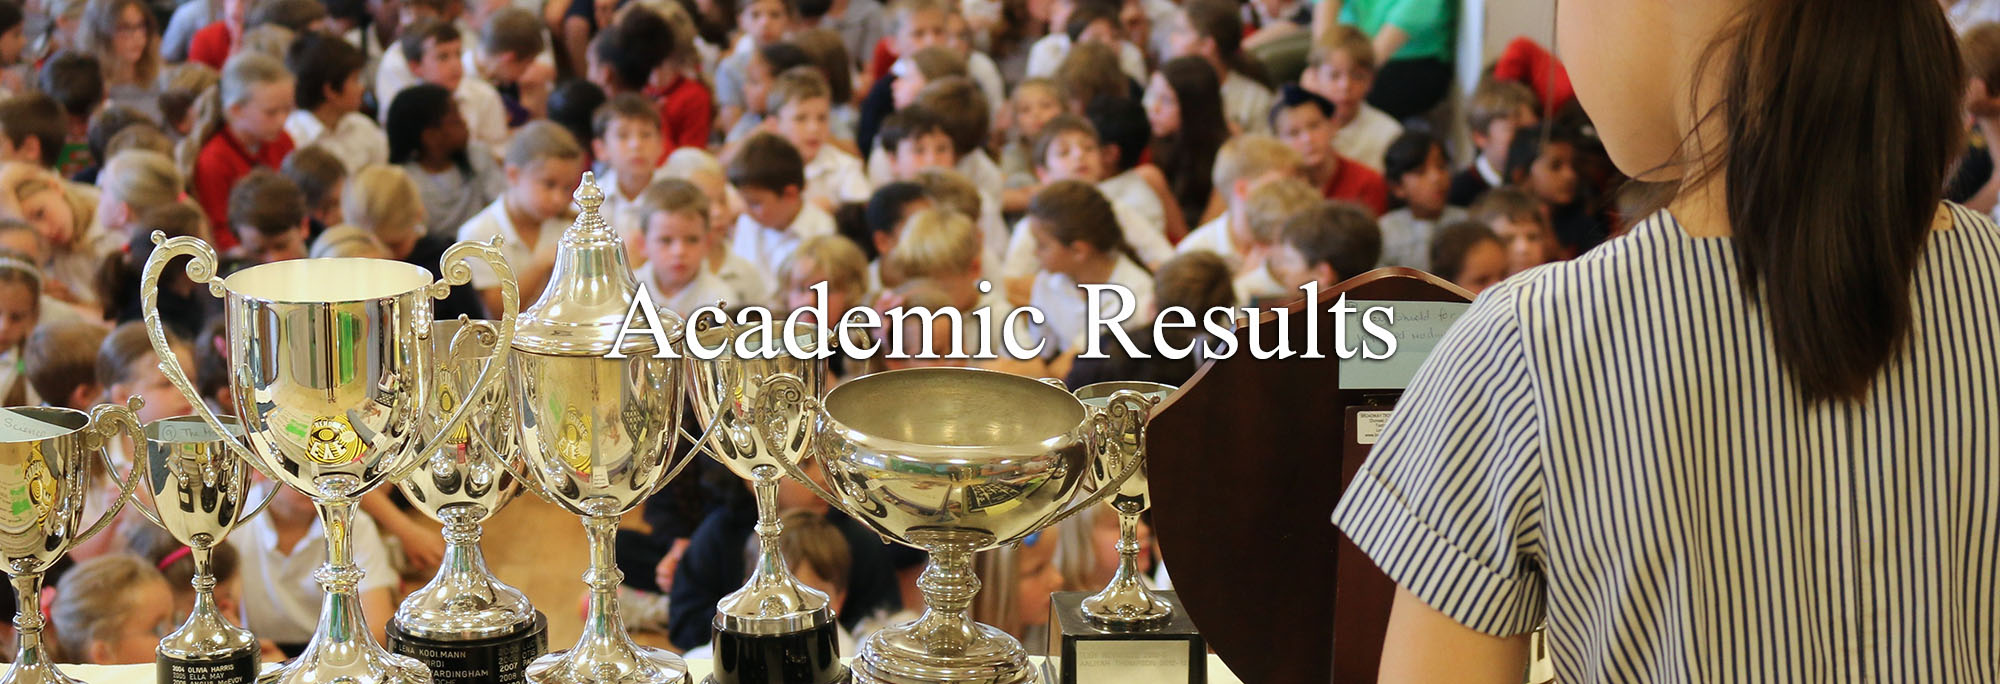 Academic Results Header